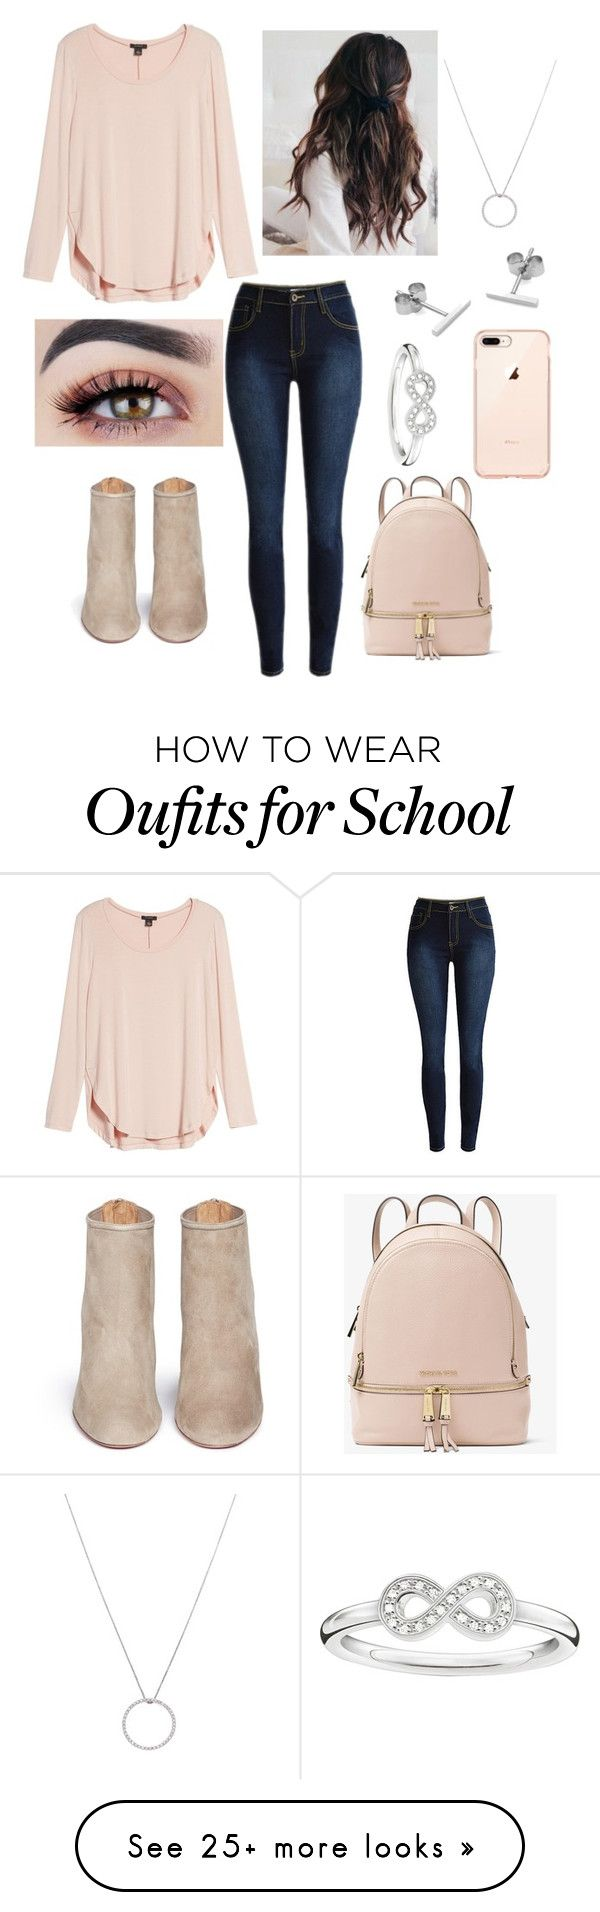 """School outfit"" by pinkj3w3l on Polyvore featuring Halogen, Aquazzura, MICHAEL Michael Kors, Myia Bonner, Roberto Coin and Thomas Sabo"